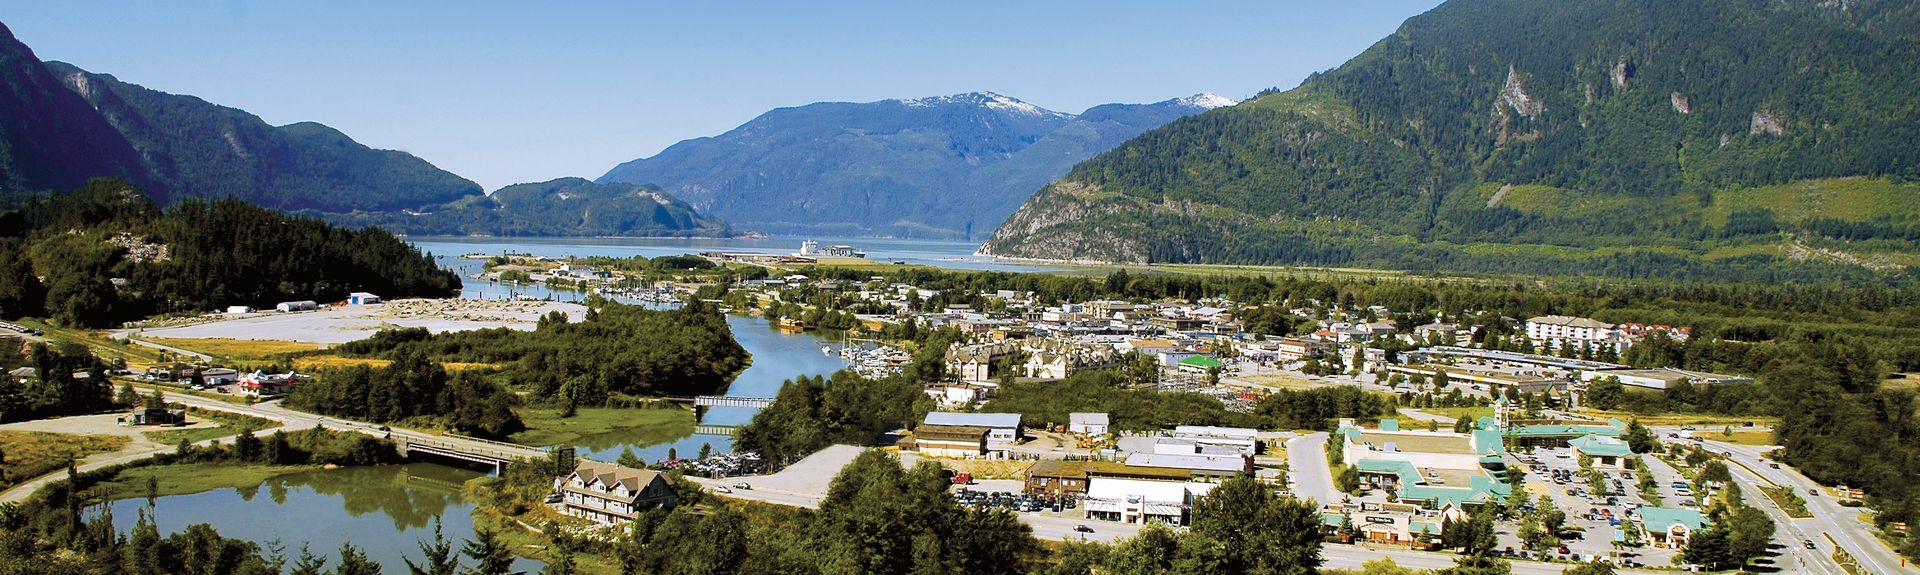 Squamish, Columbia Británica, Canadá